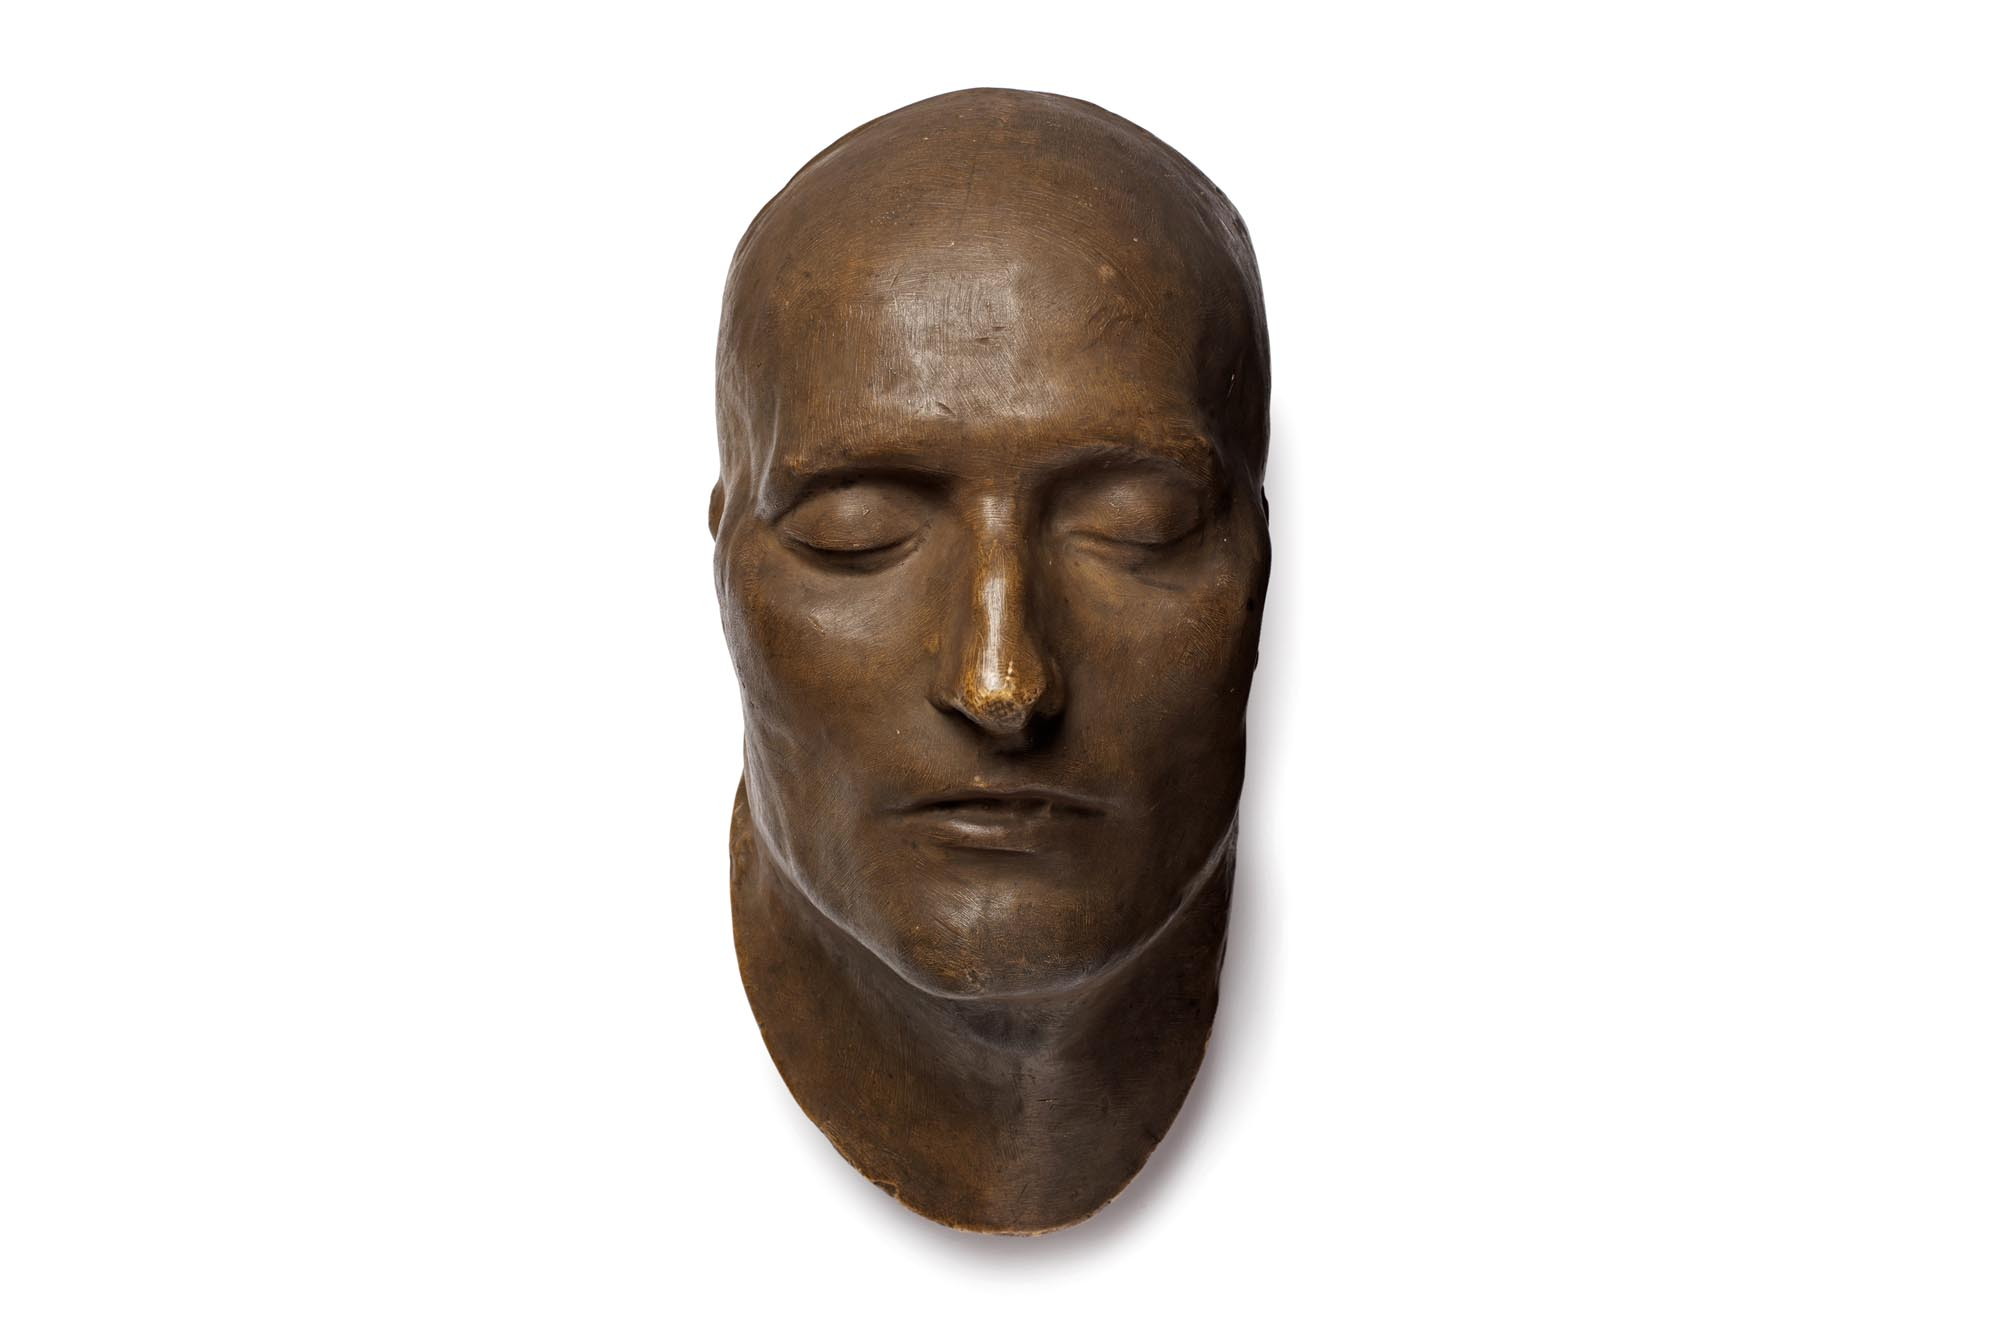 a photo of a death mask in brown